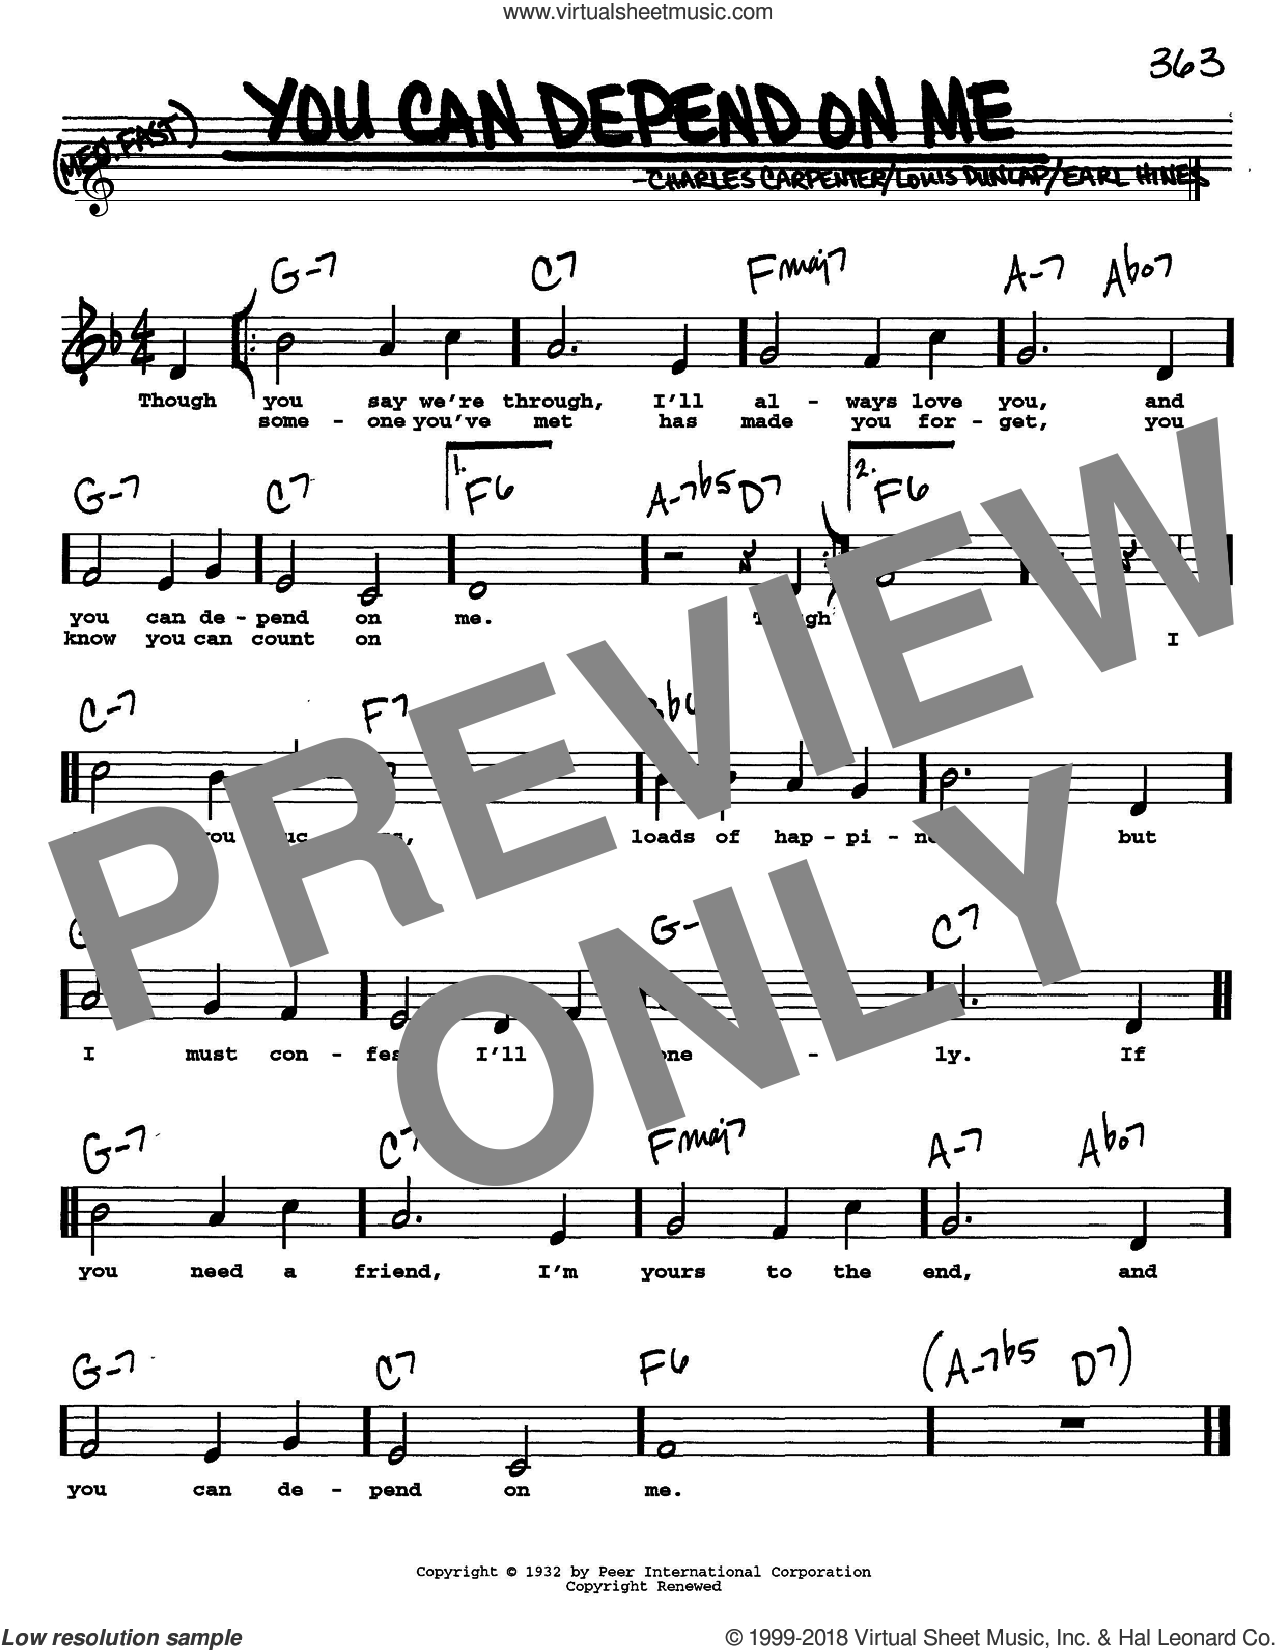 You Can Depend On Me sheet music for voice and other instruments (Vocal Volume 2) by Louis Dunlap